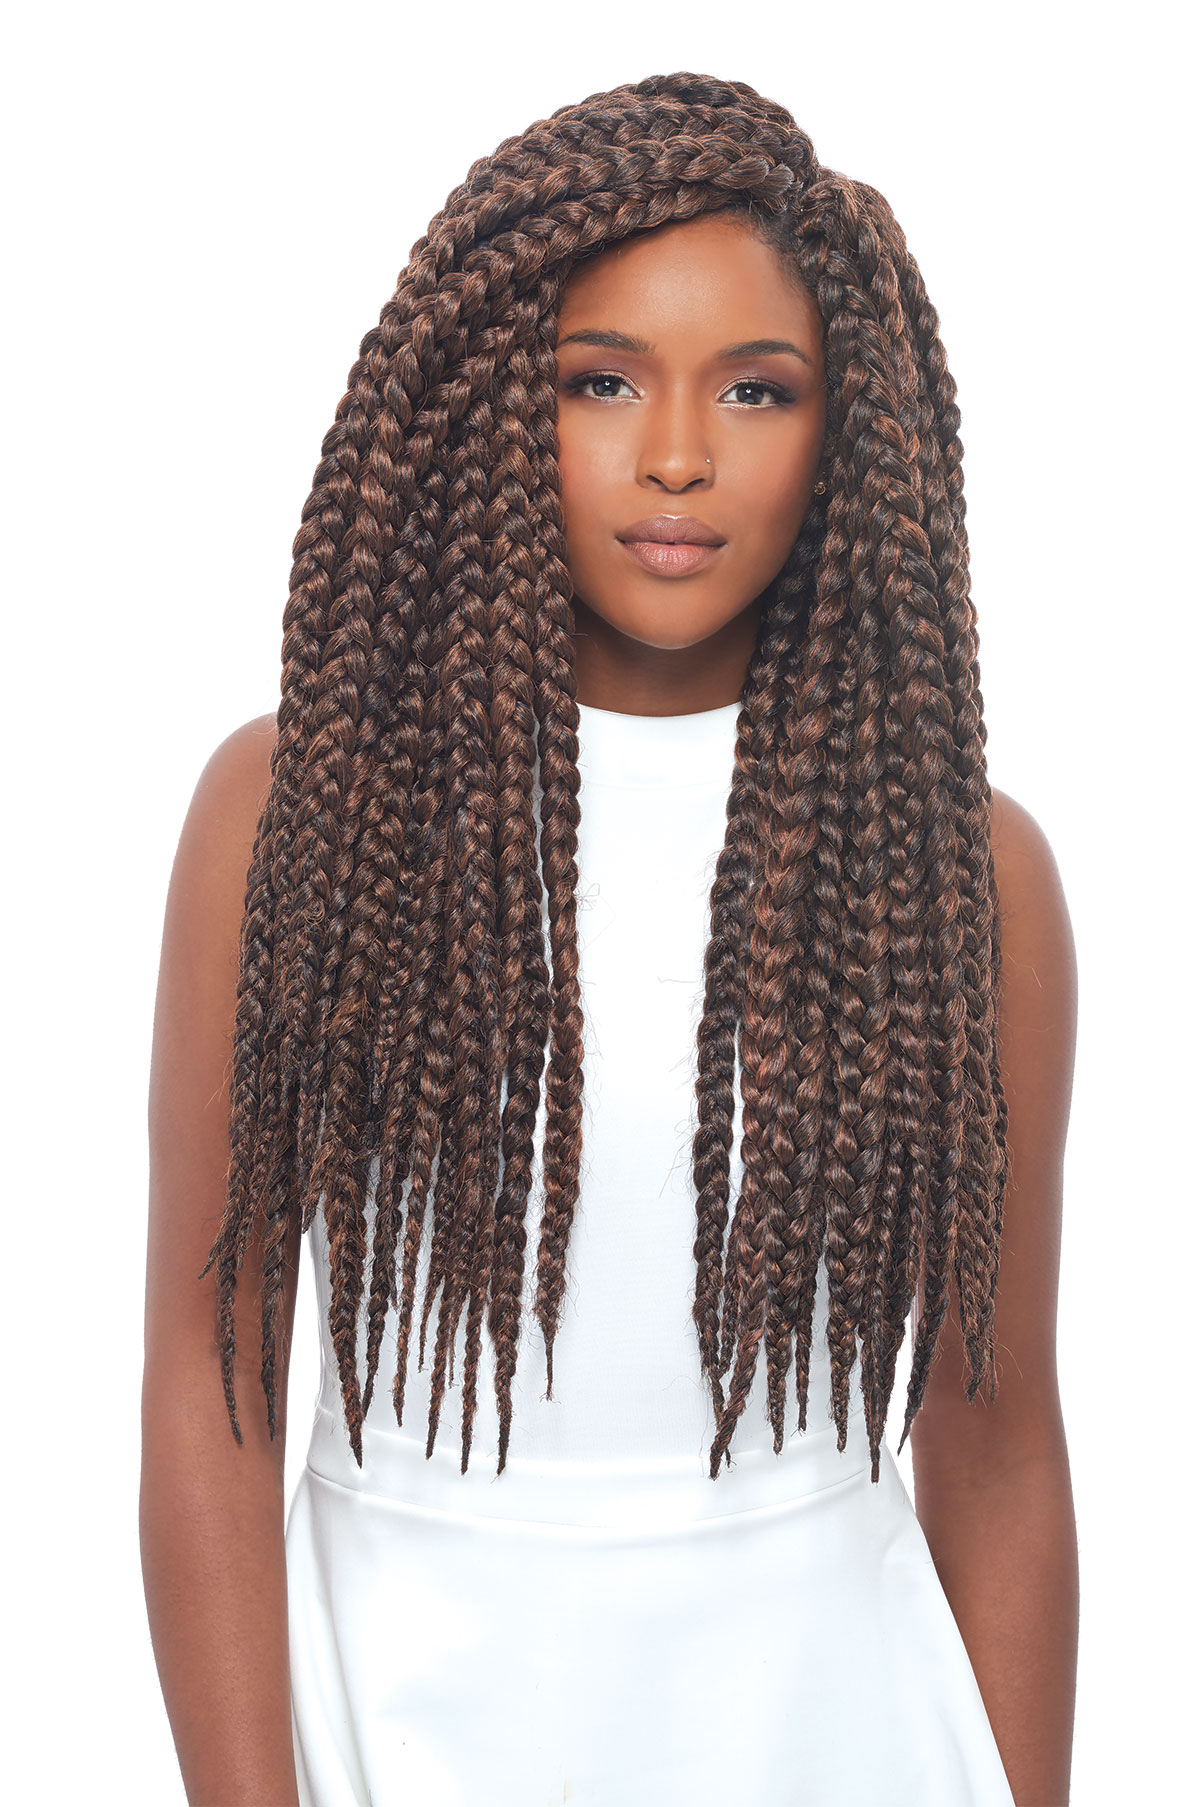 ... BRAID 24 - JANET COLLECTION SYNTHETIC CROCHET BRAIDING HAIR eBay